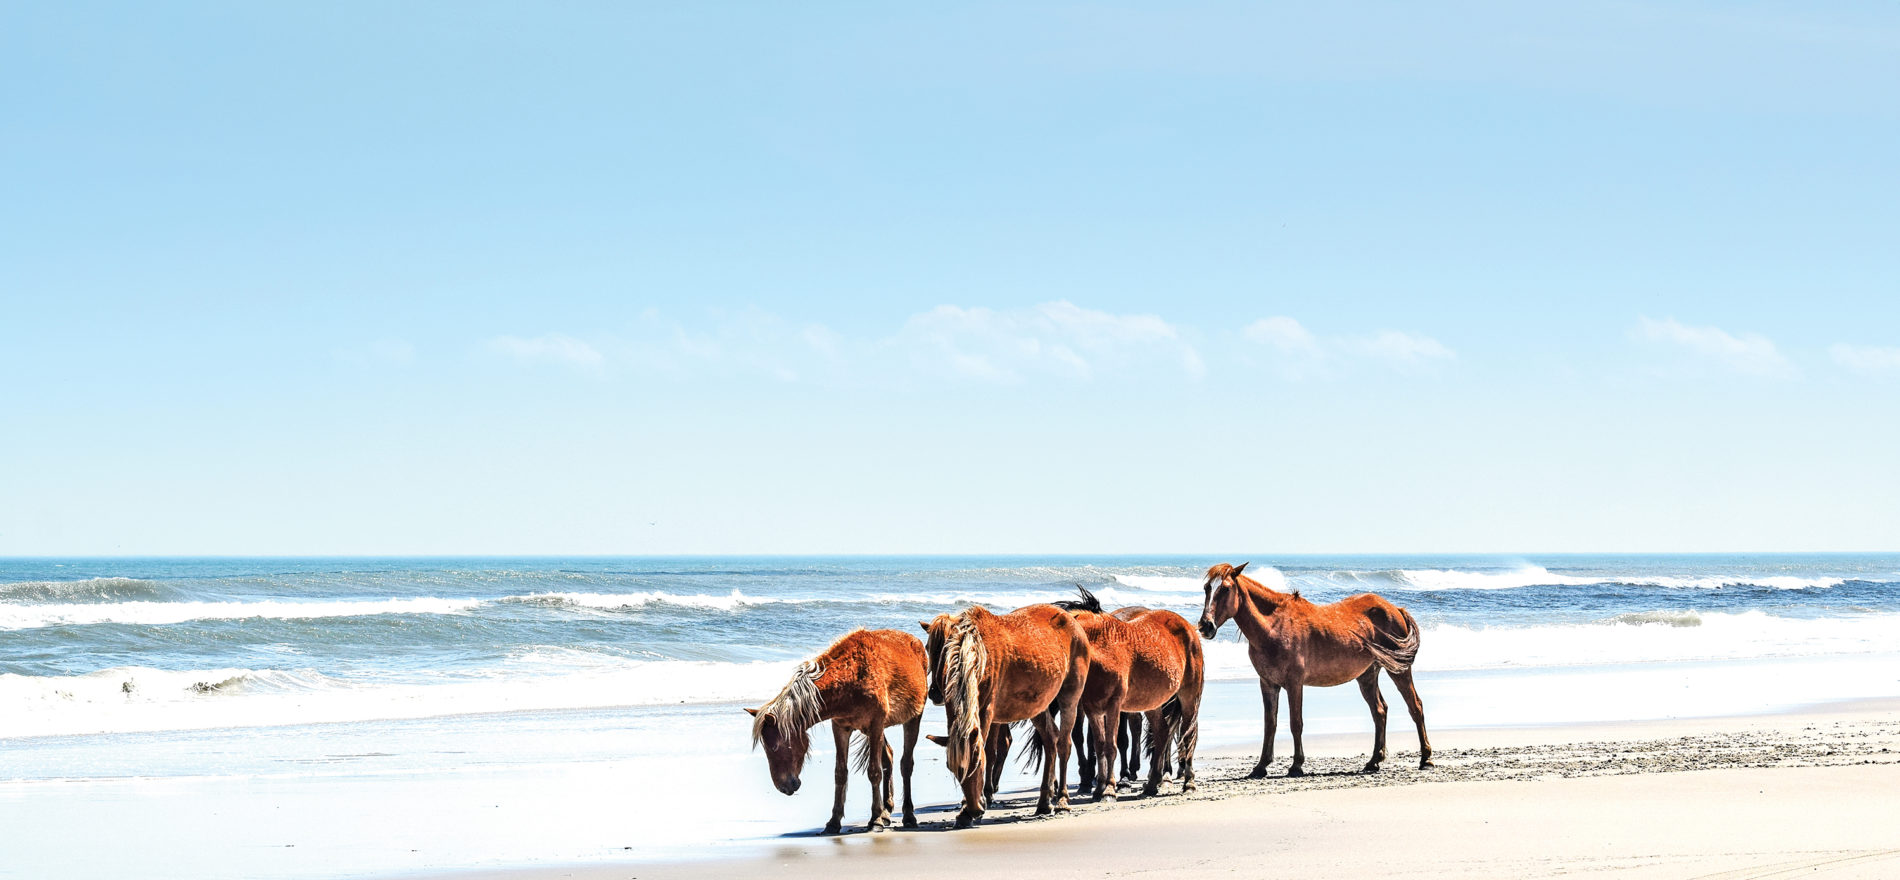 The Wild Horses Of Corolla In The Outer Banks Virginia Sportsman